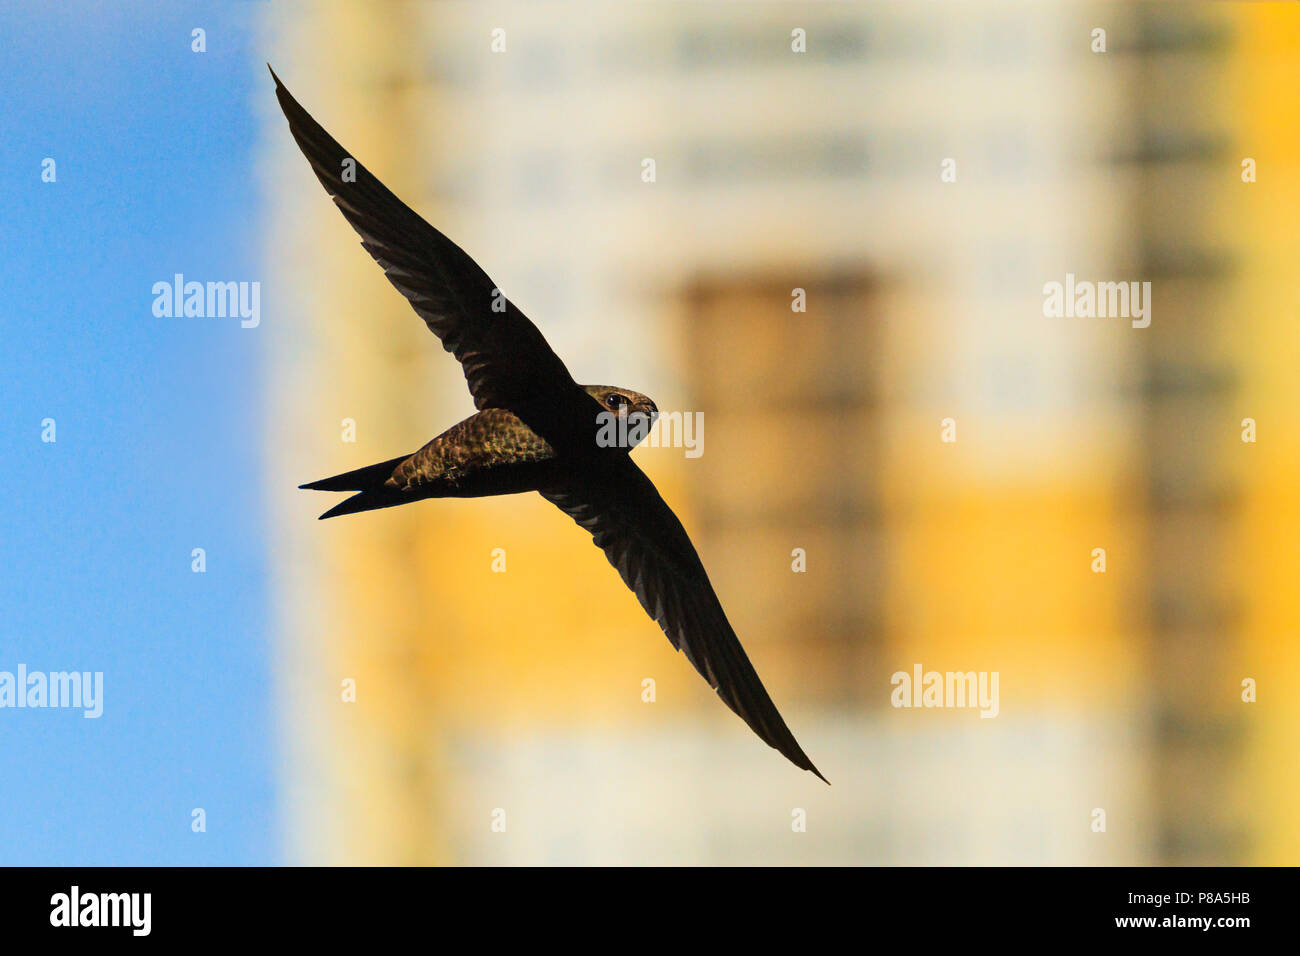 Swift flies against the backdrop of high-rise building - Stock Image